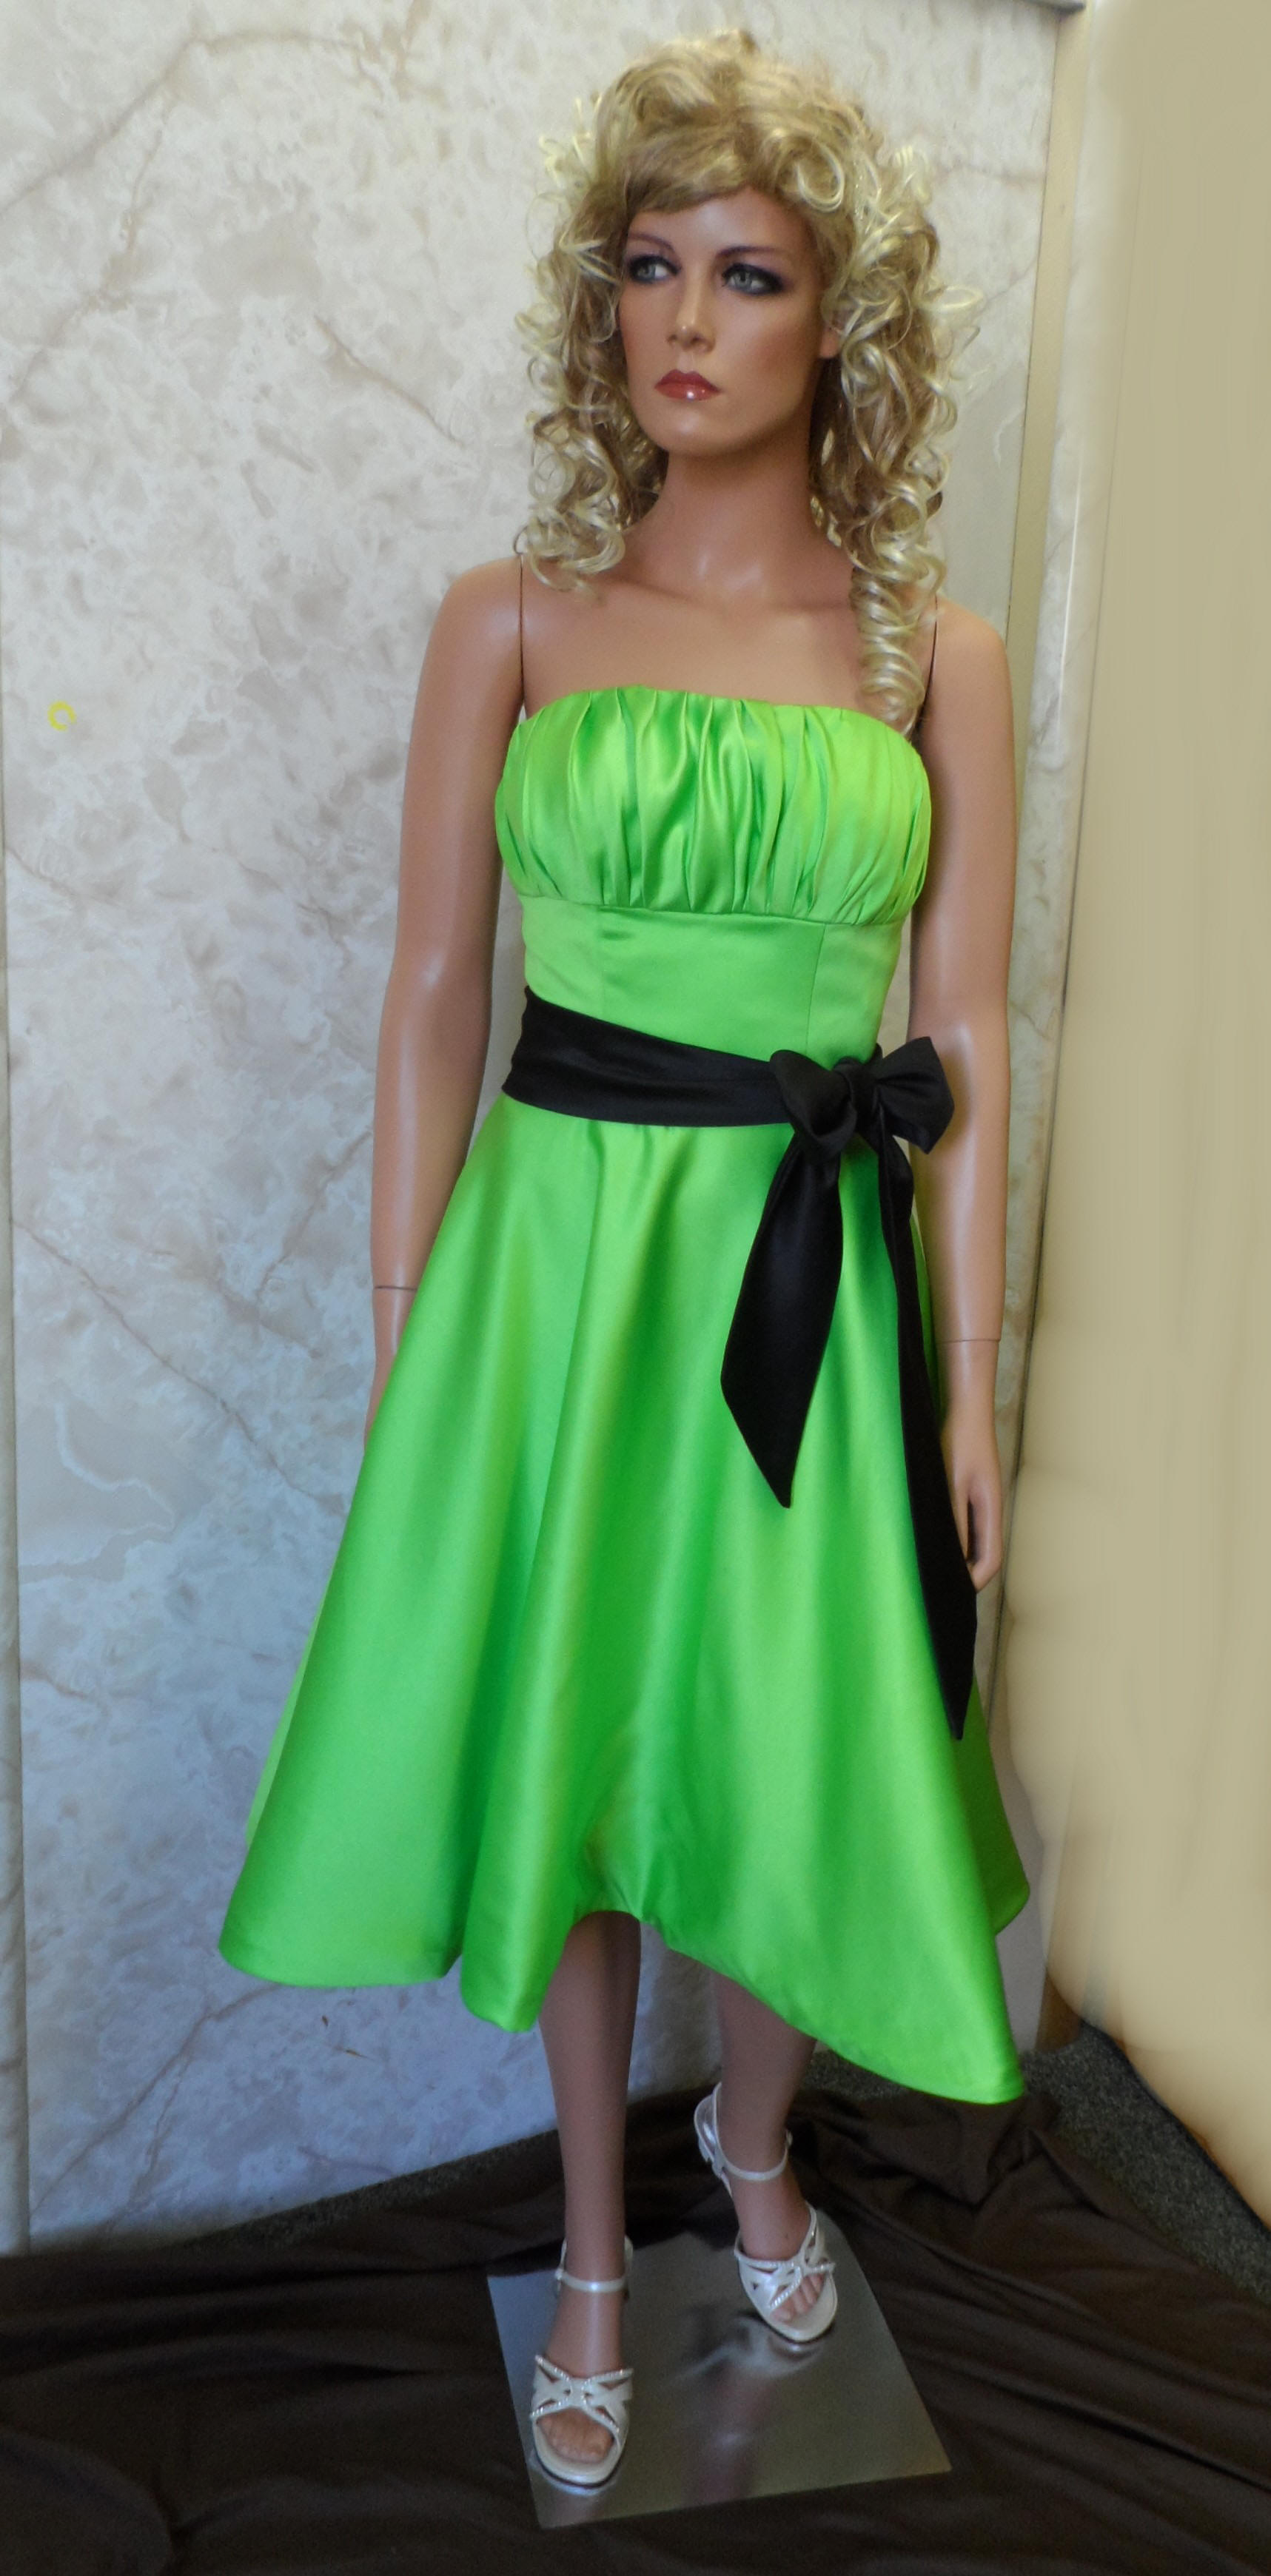 Green bridesmaid dresses short green bridesmaid dress with black sash ombrellifo Image collections